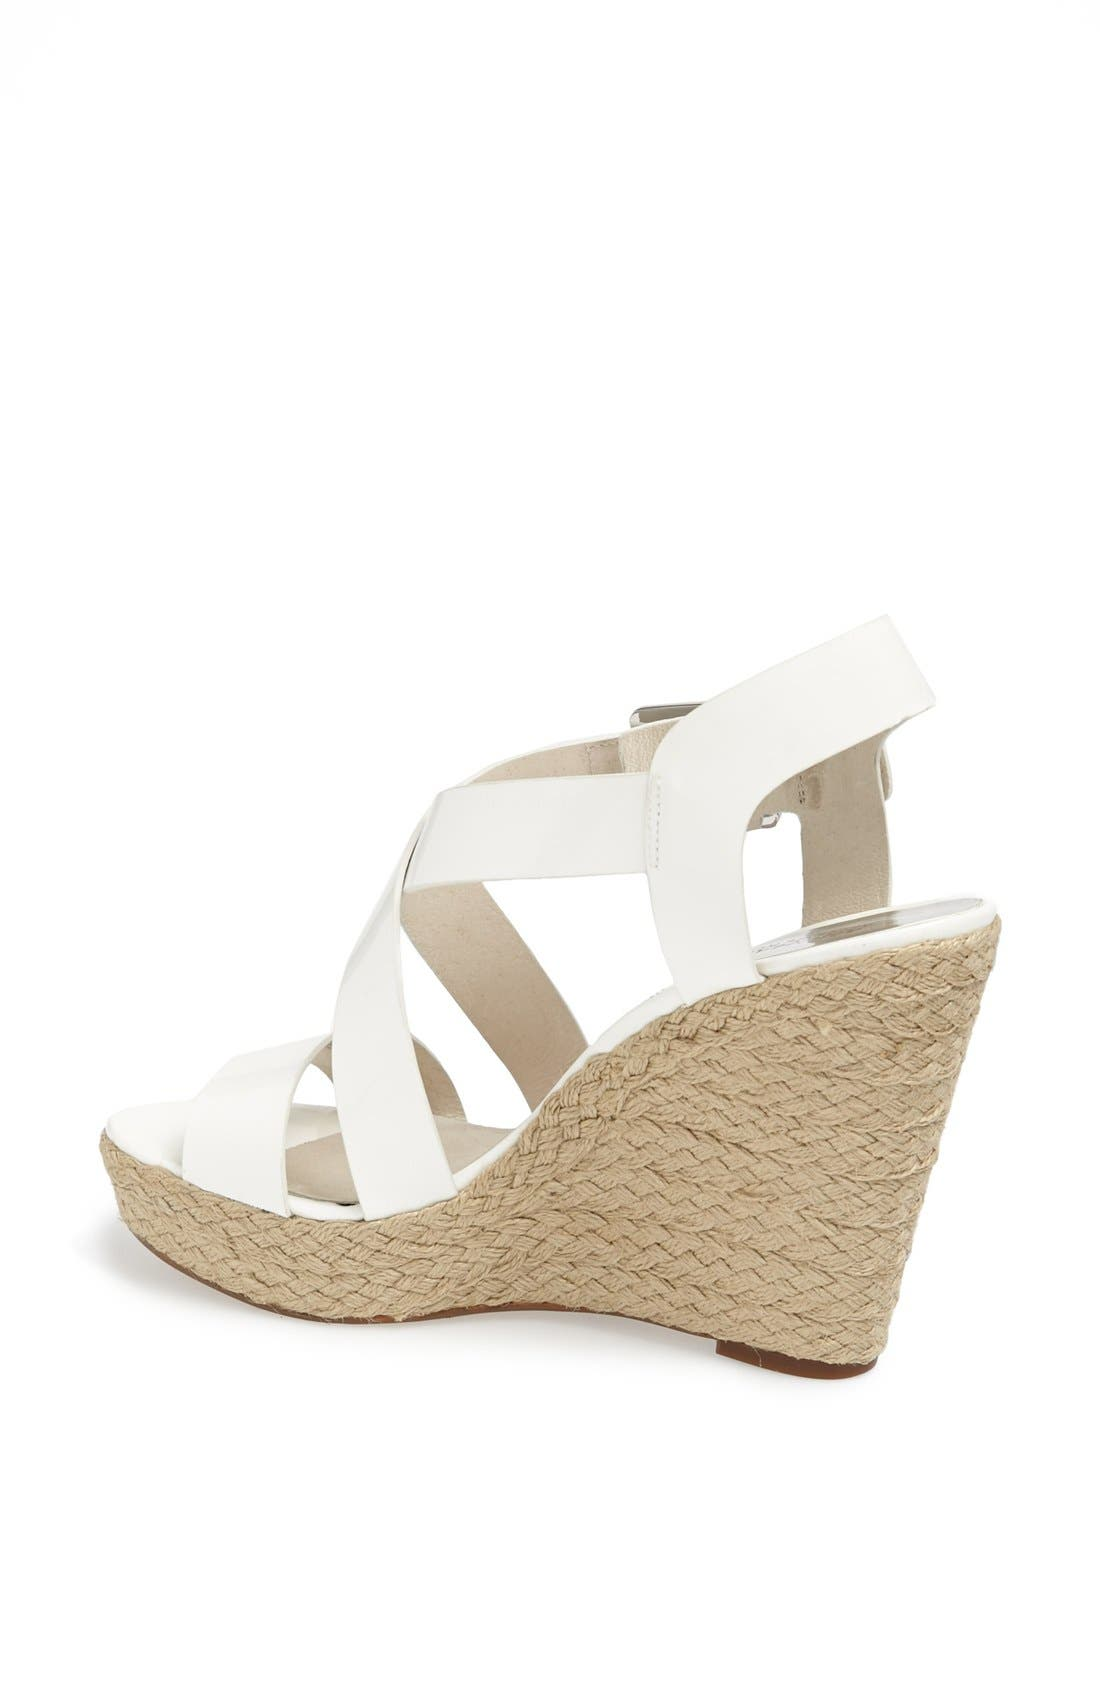 'Giovanna' Wedge Sandal,                             Alternate thumbnail 4, color,                             101